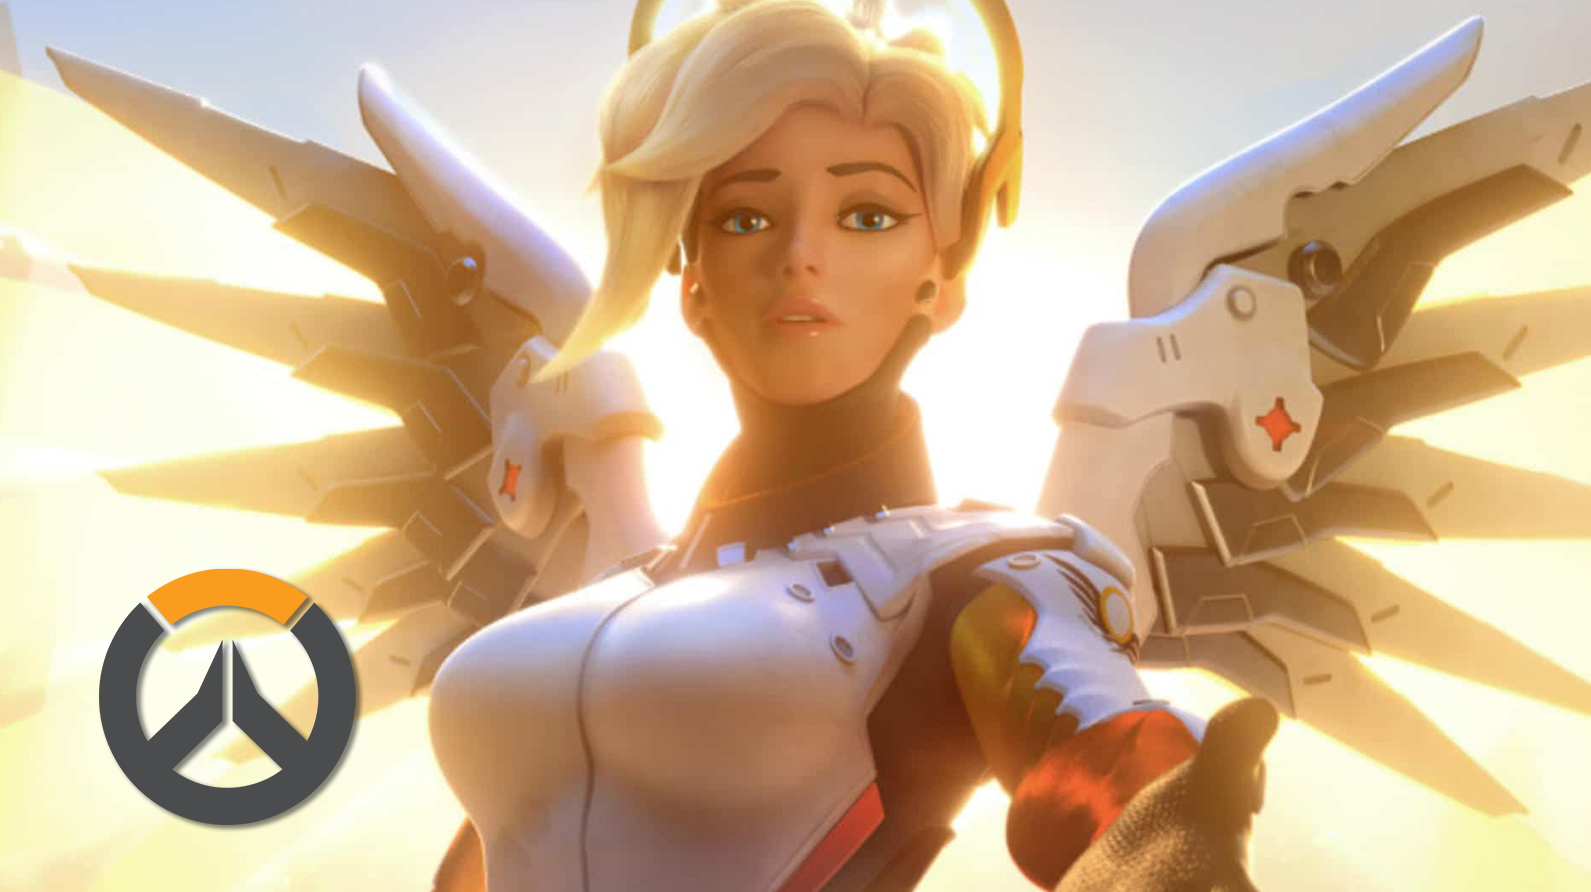 Overwatch's Mercy reaches her hand out